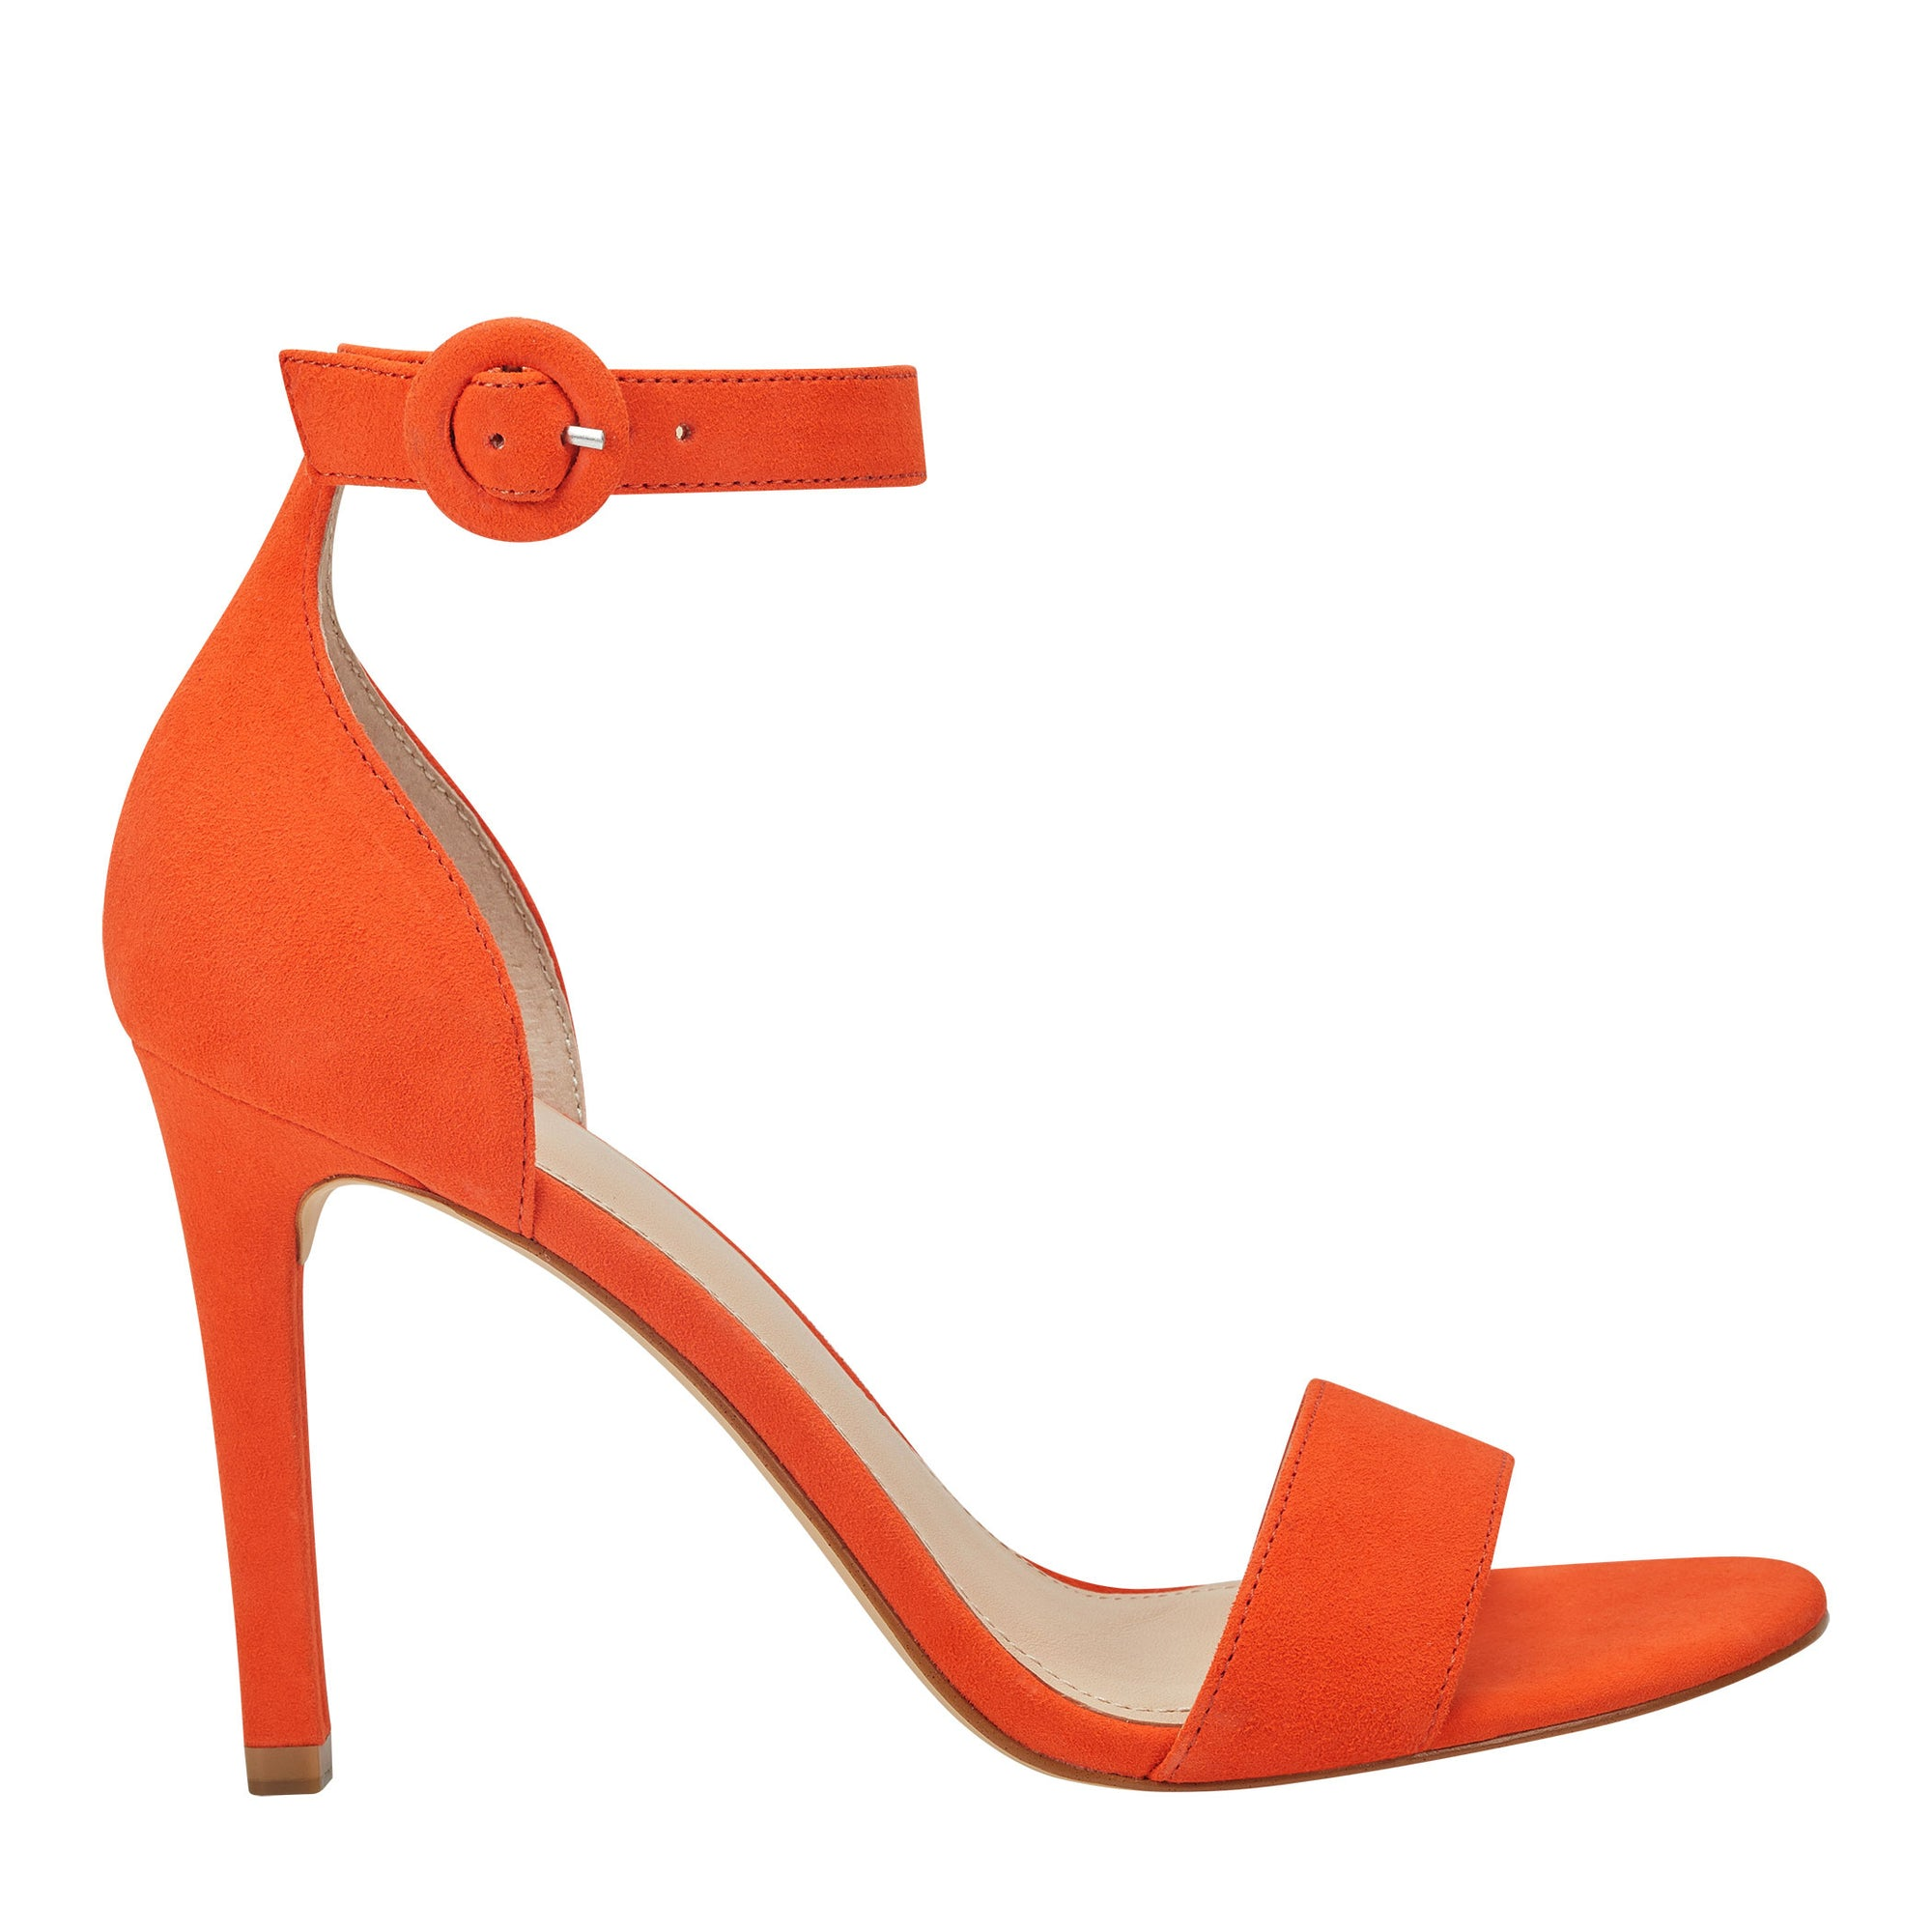 kora-pump-in-orange-suede